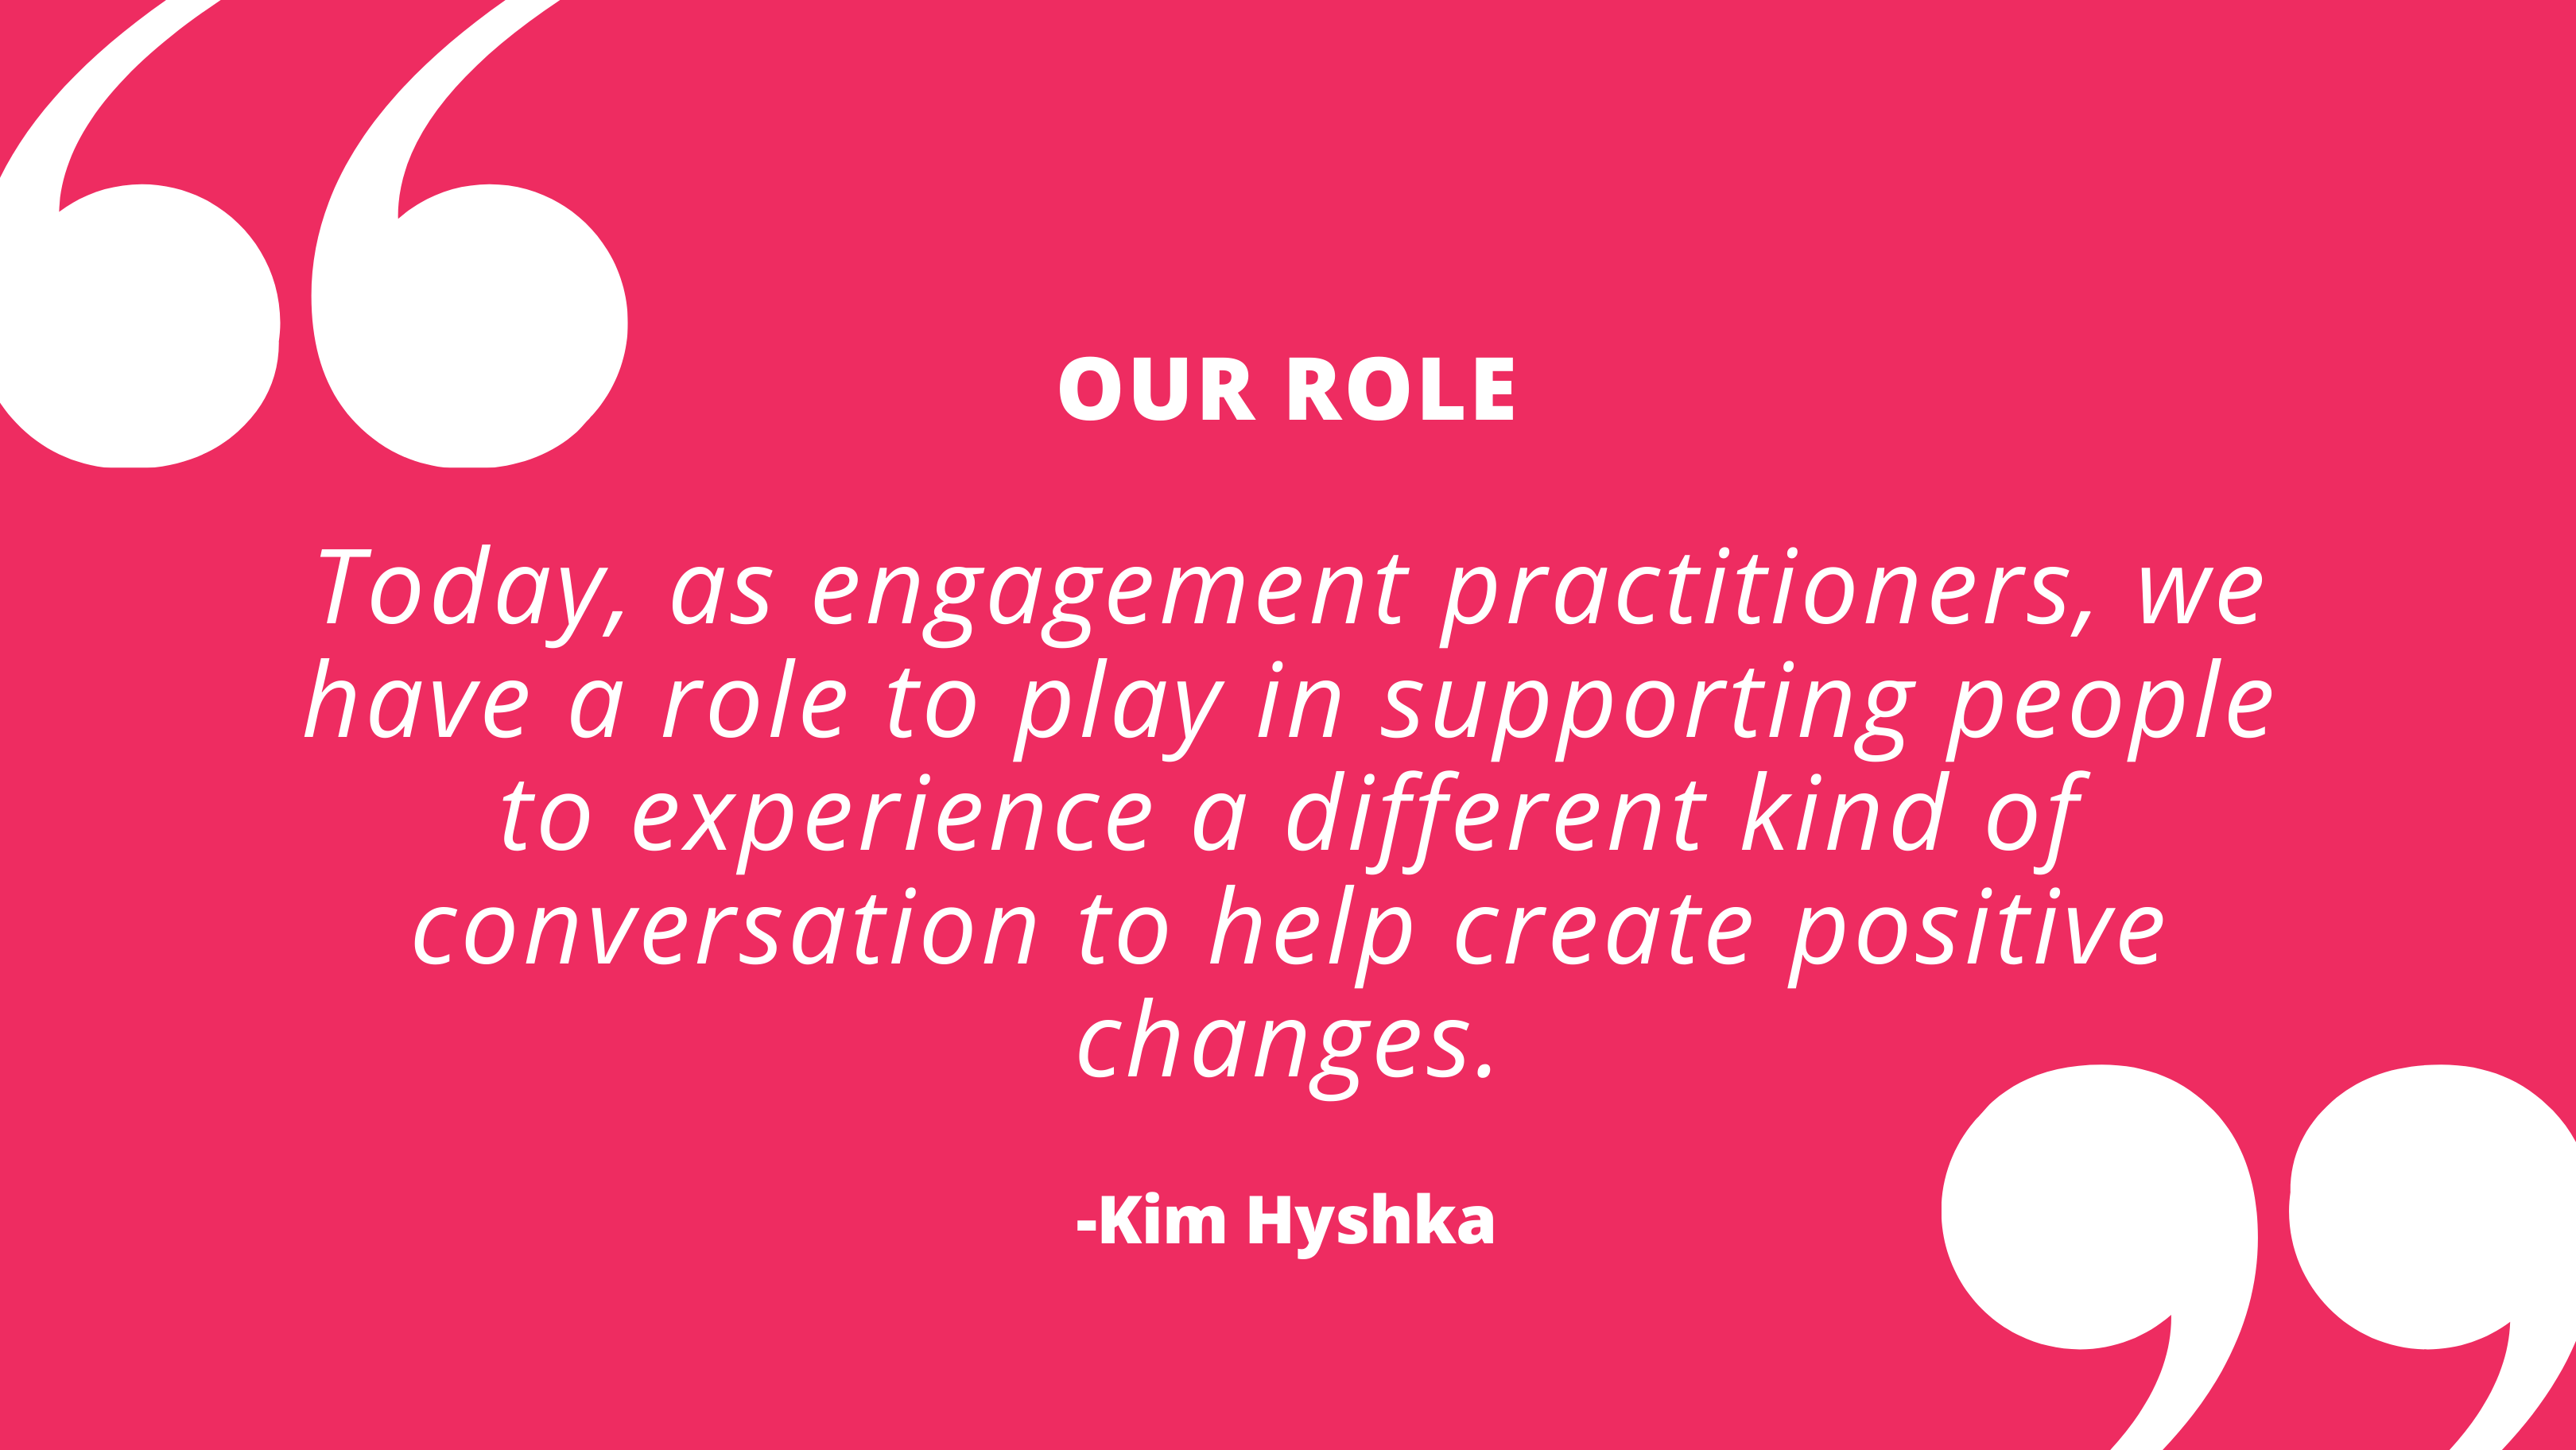 Today, as engagement practitioners, we have a role to play in supporting people to experience a different kind of conversation to help create positive changes. - Kim Hyshka, Dialogue Partners